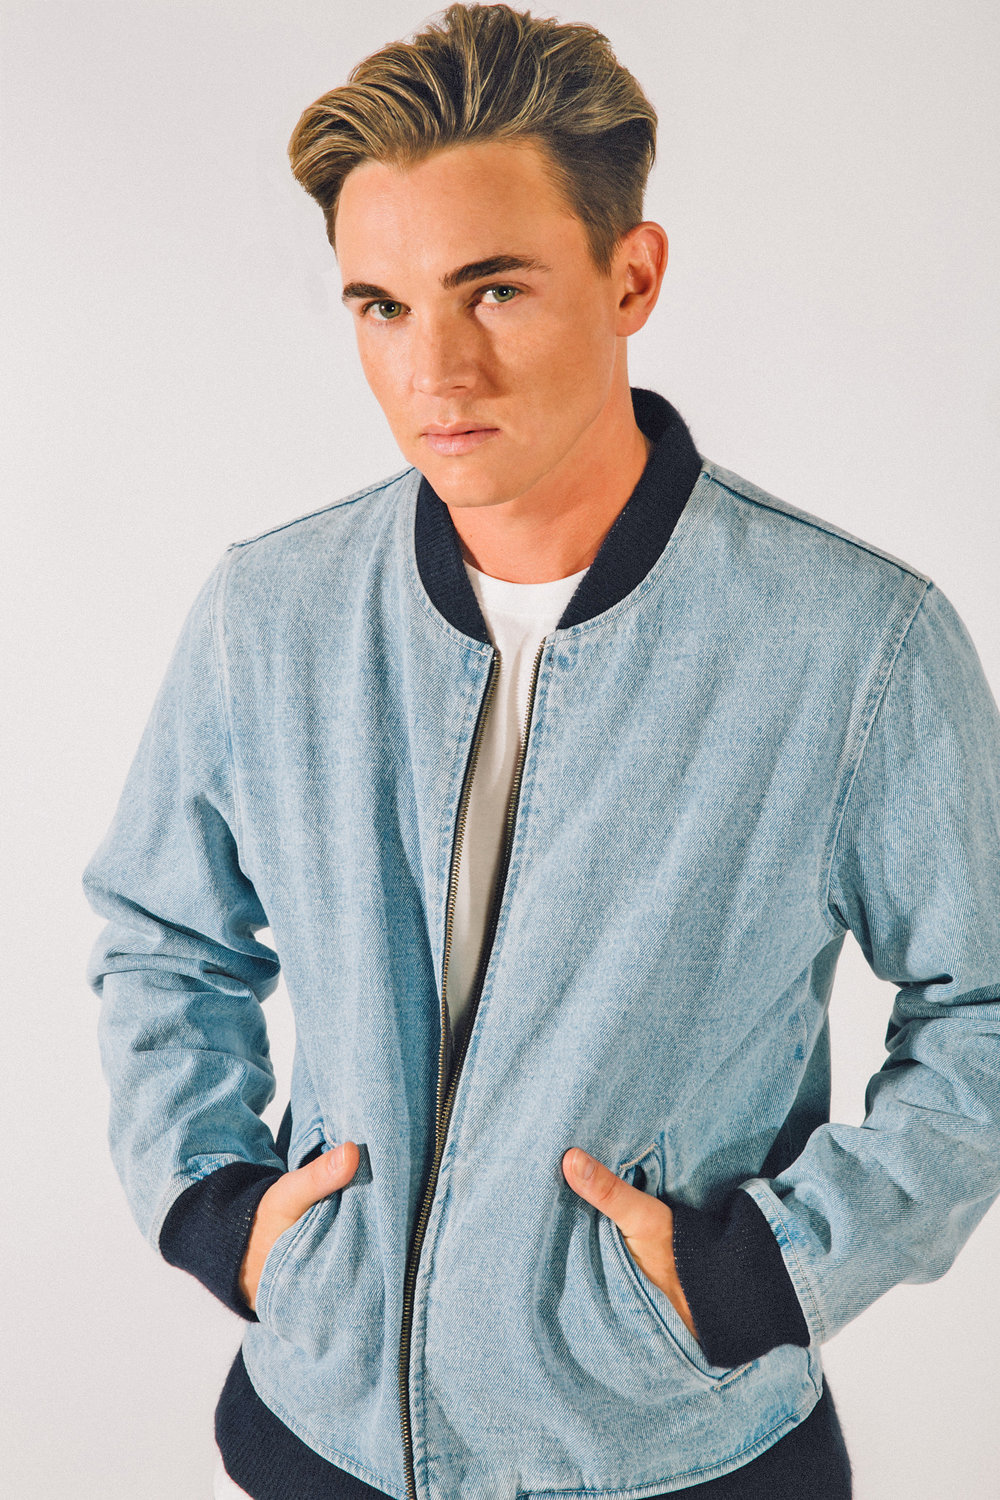 HEADLINER — Jesse McCartney will perform 7 p.m. April 27 in the Jorgensen Athletic and Event Center Field House at the MVCC Utica Campus. Tickets go on sale Jan. 14, at www.mvcc.edu/tickets